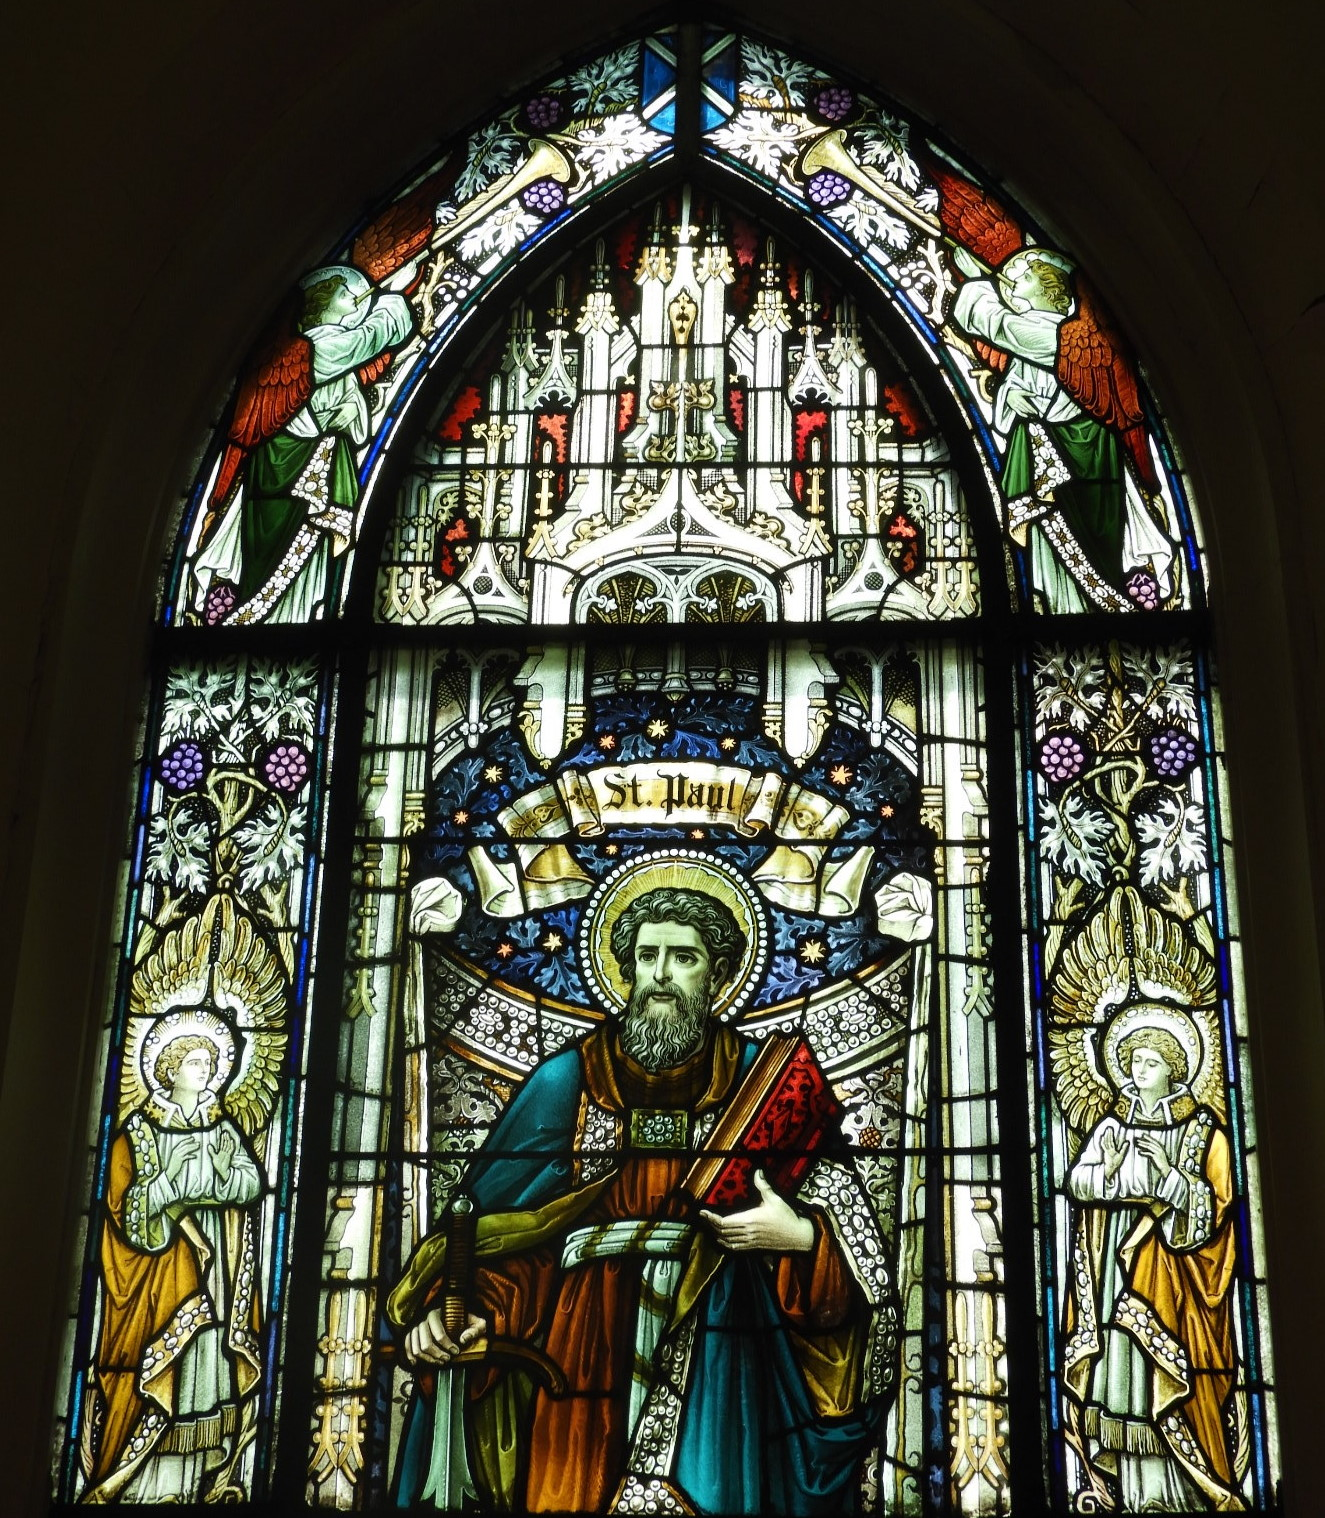 Stained glass window of St. Paul. Photograph by Richard Heath, 2019